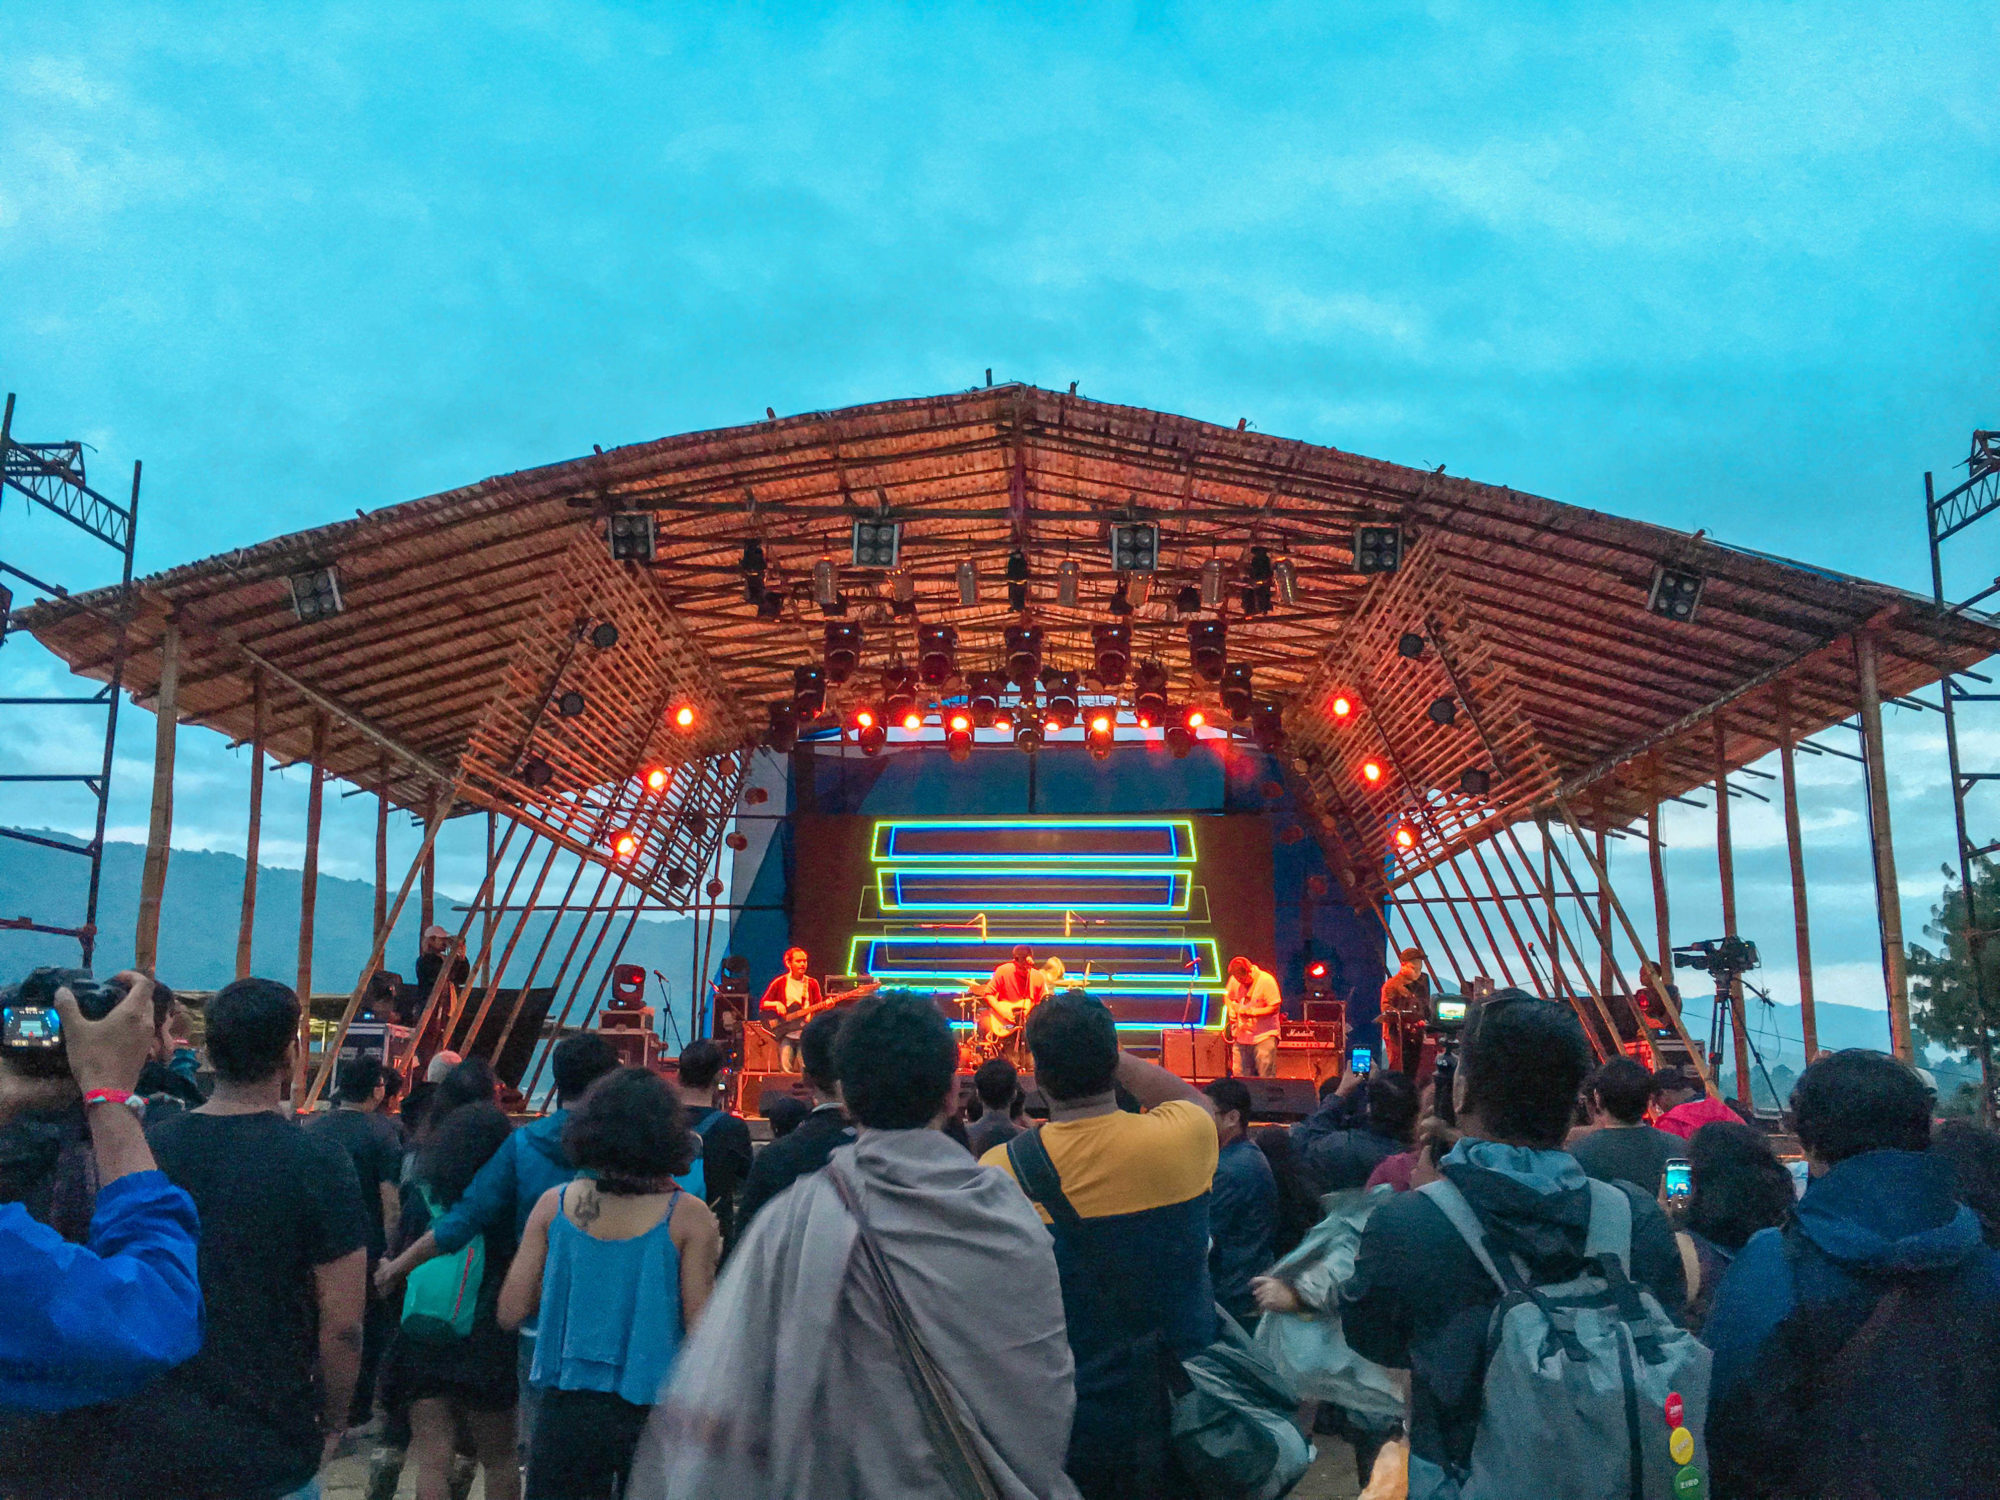 What is the daytime event at Ziro music festival like?